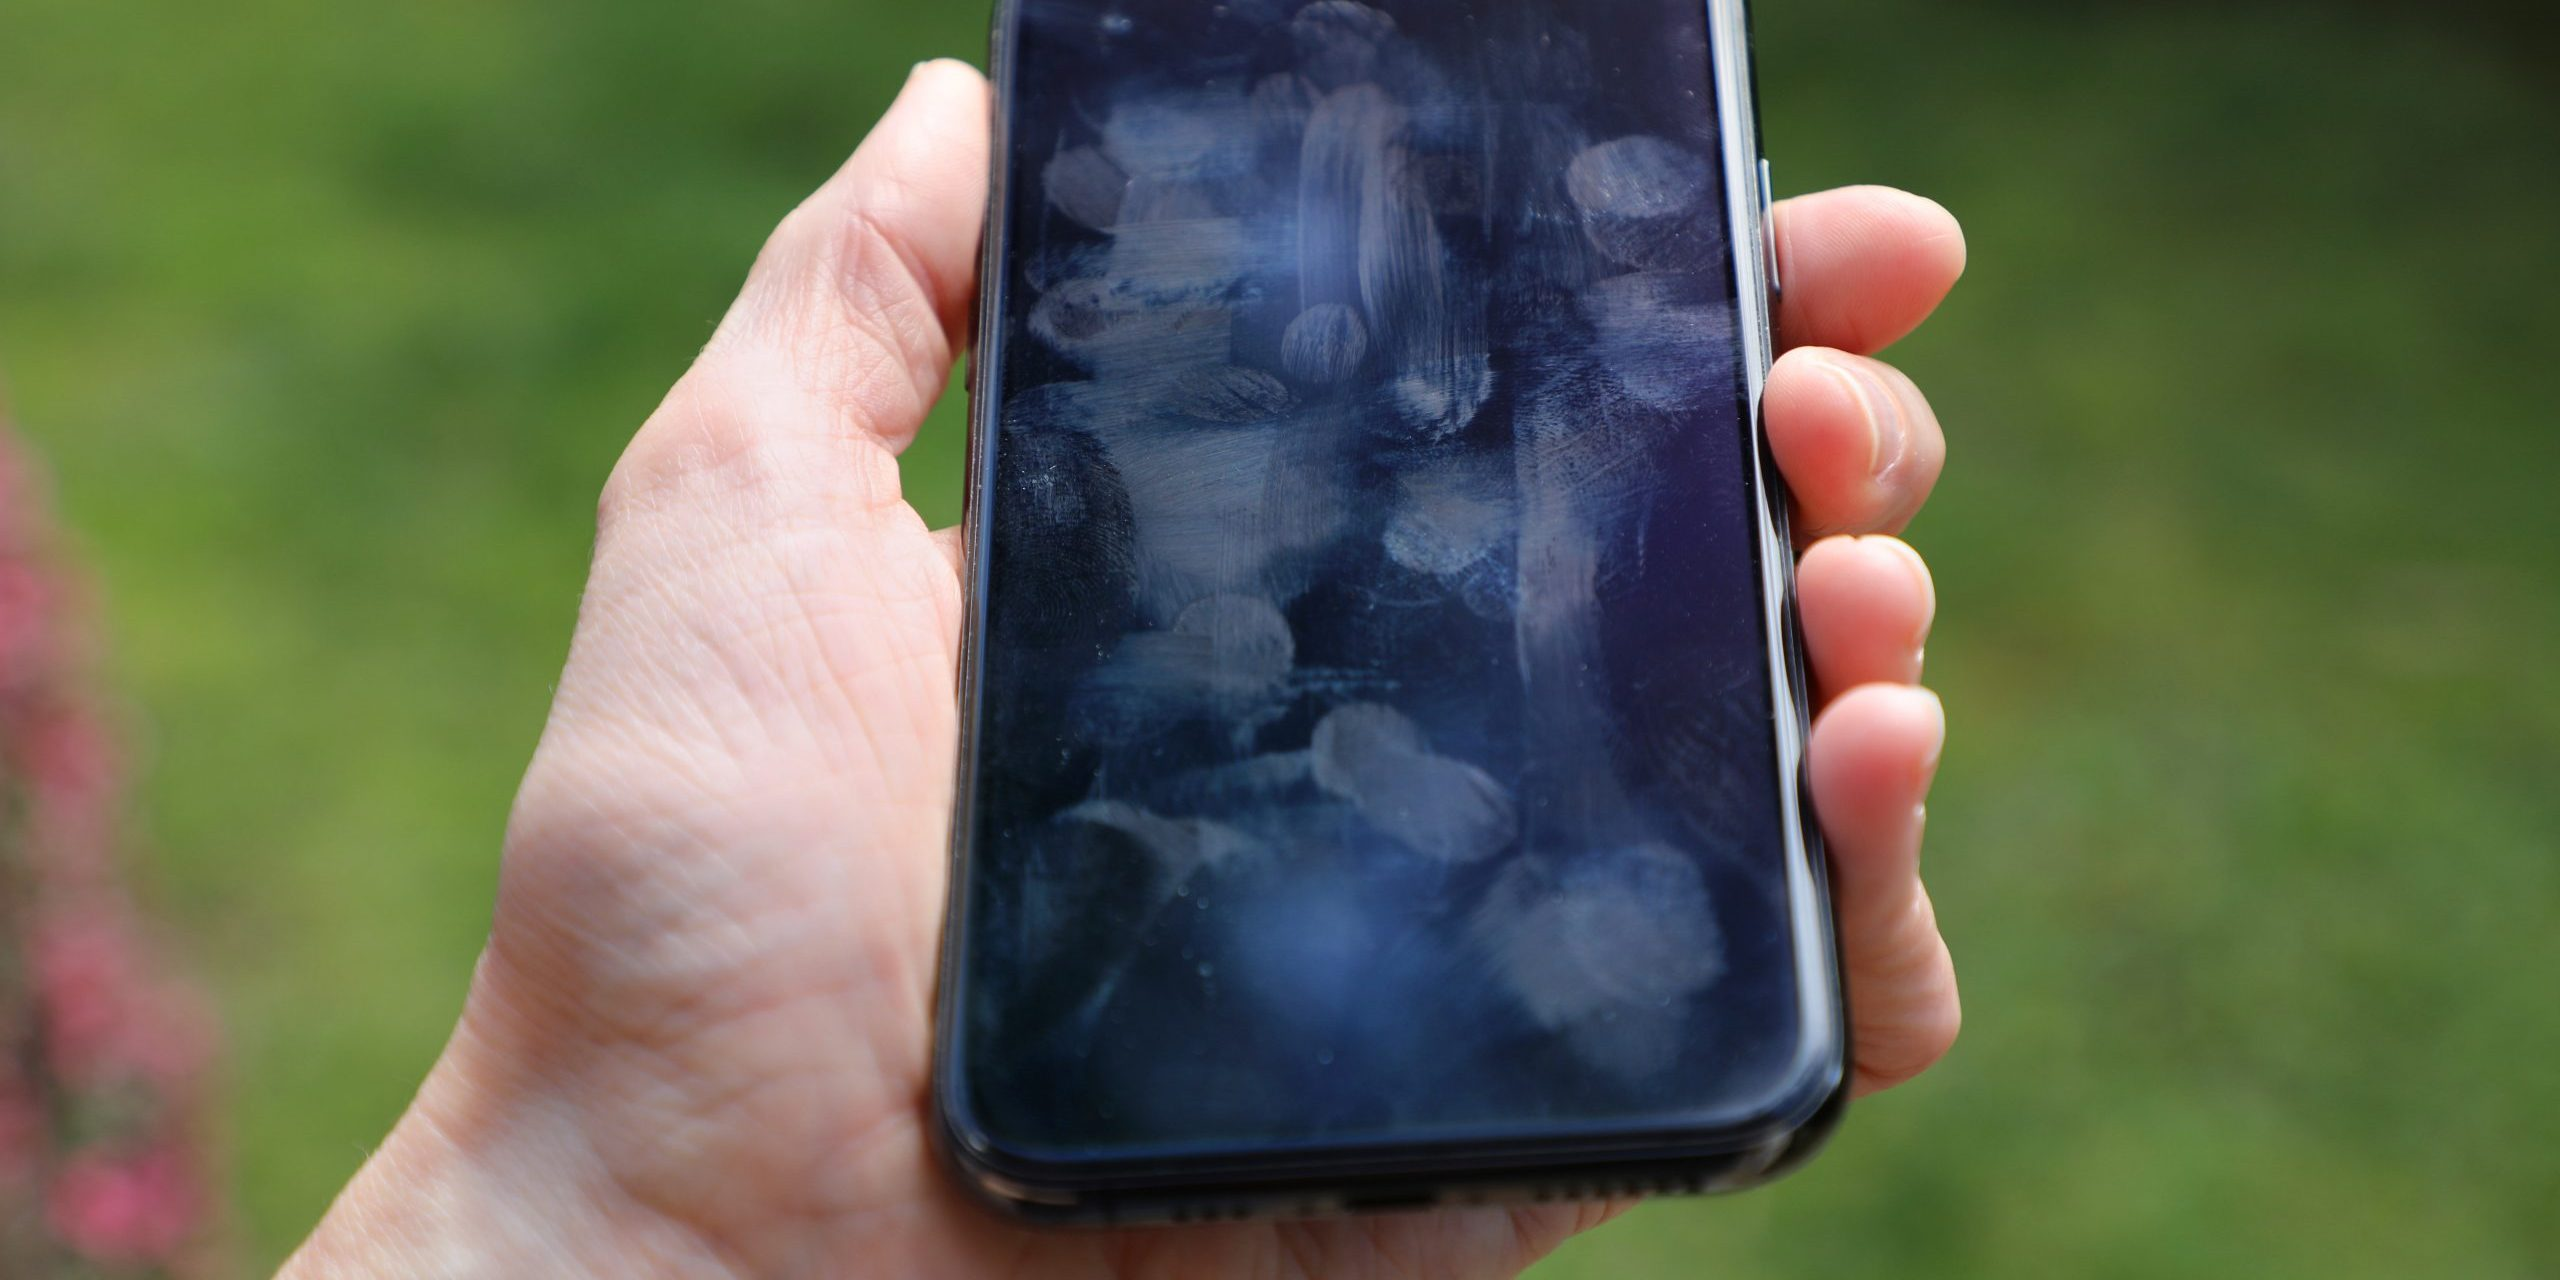 Dirty phone screen with fingerprints and smudges